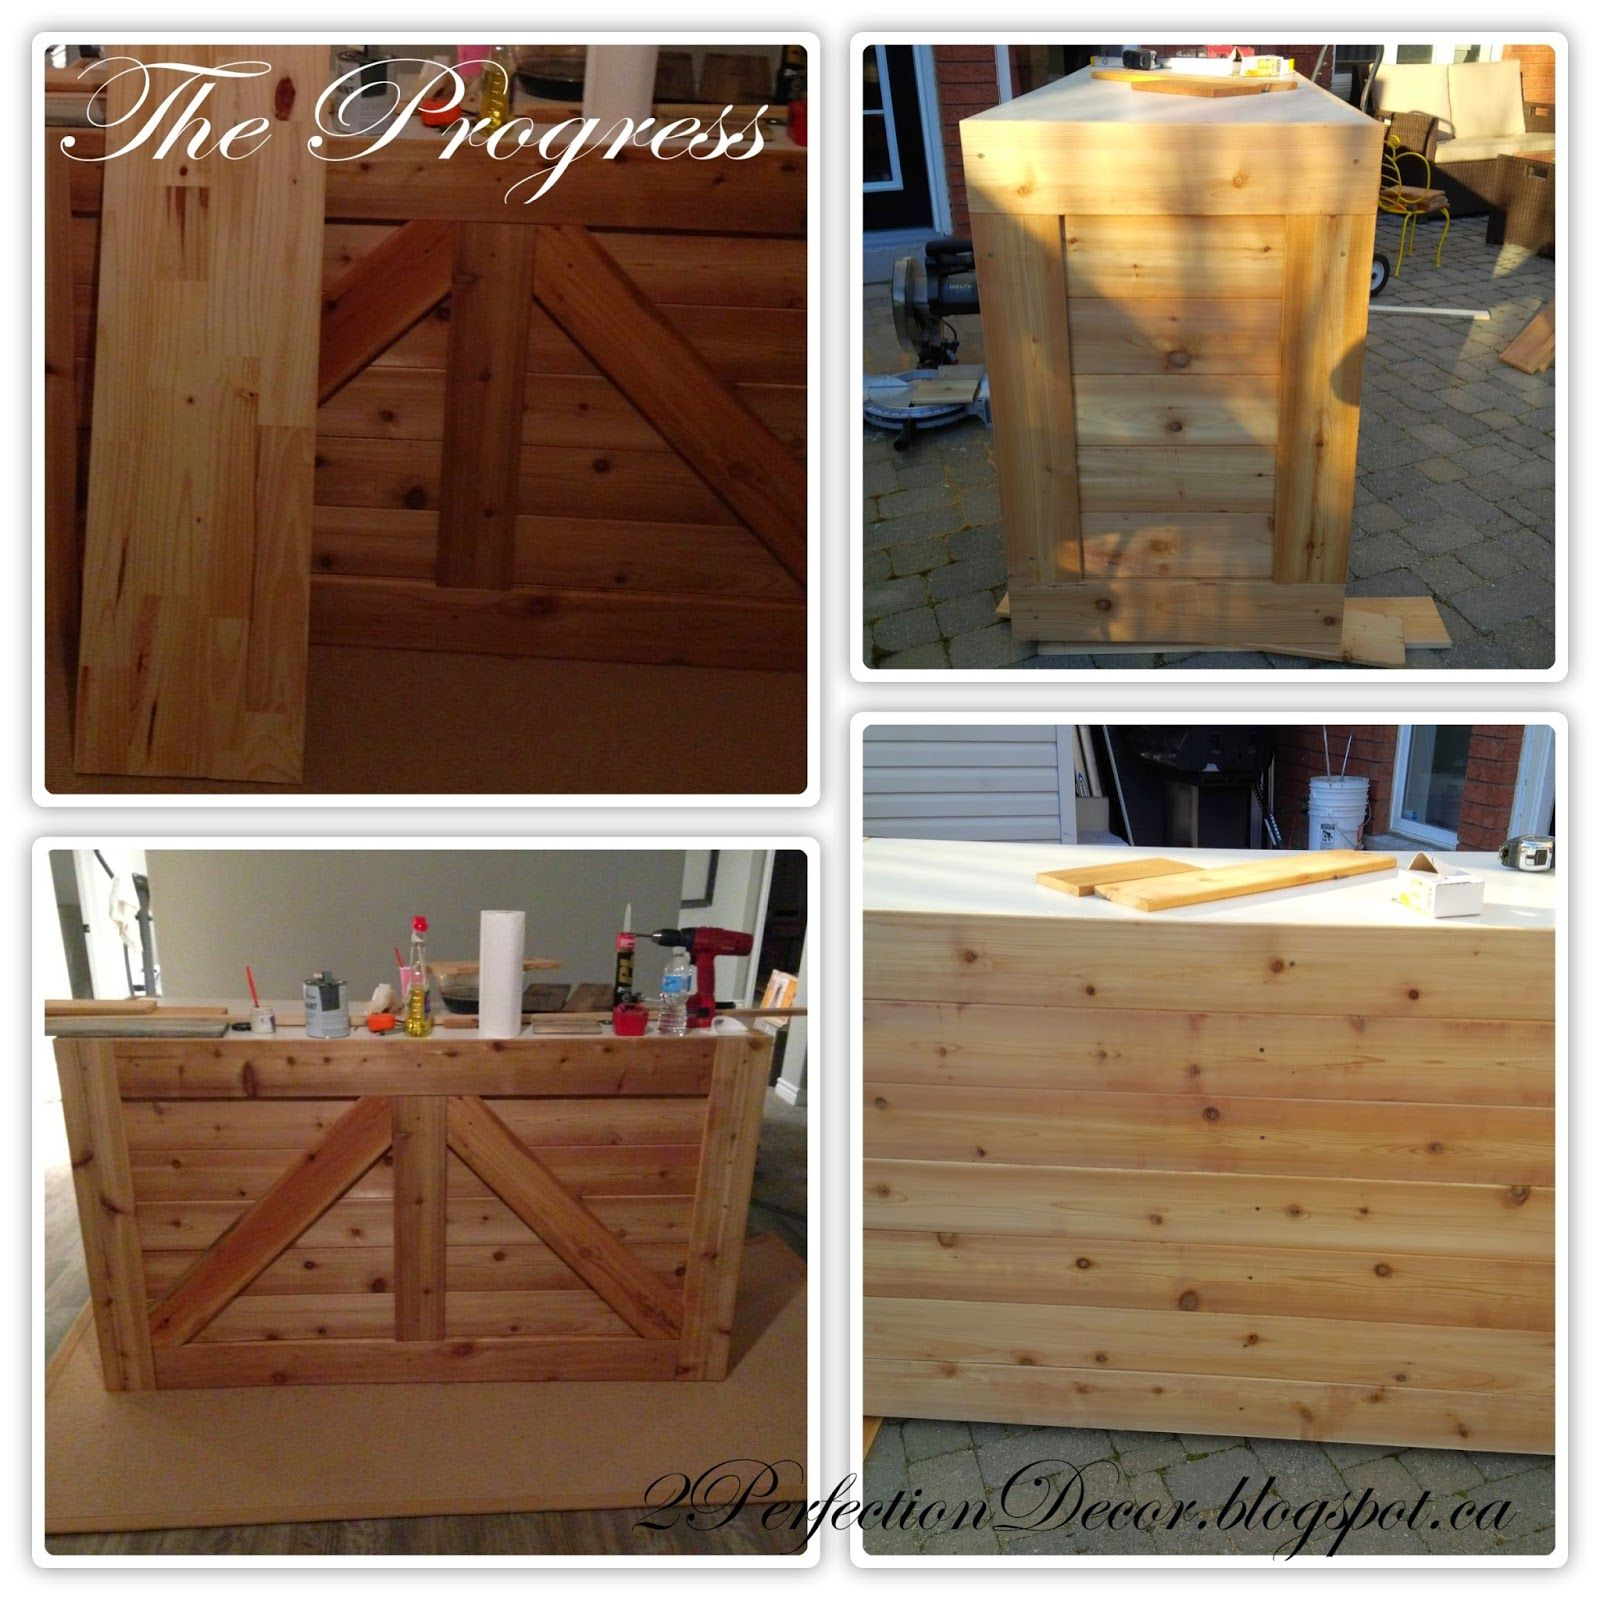 How To Repurpose A Cabinet Into A Rustic Wooden Bar By 2Perfection Decor  Blog Featured On